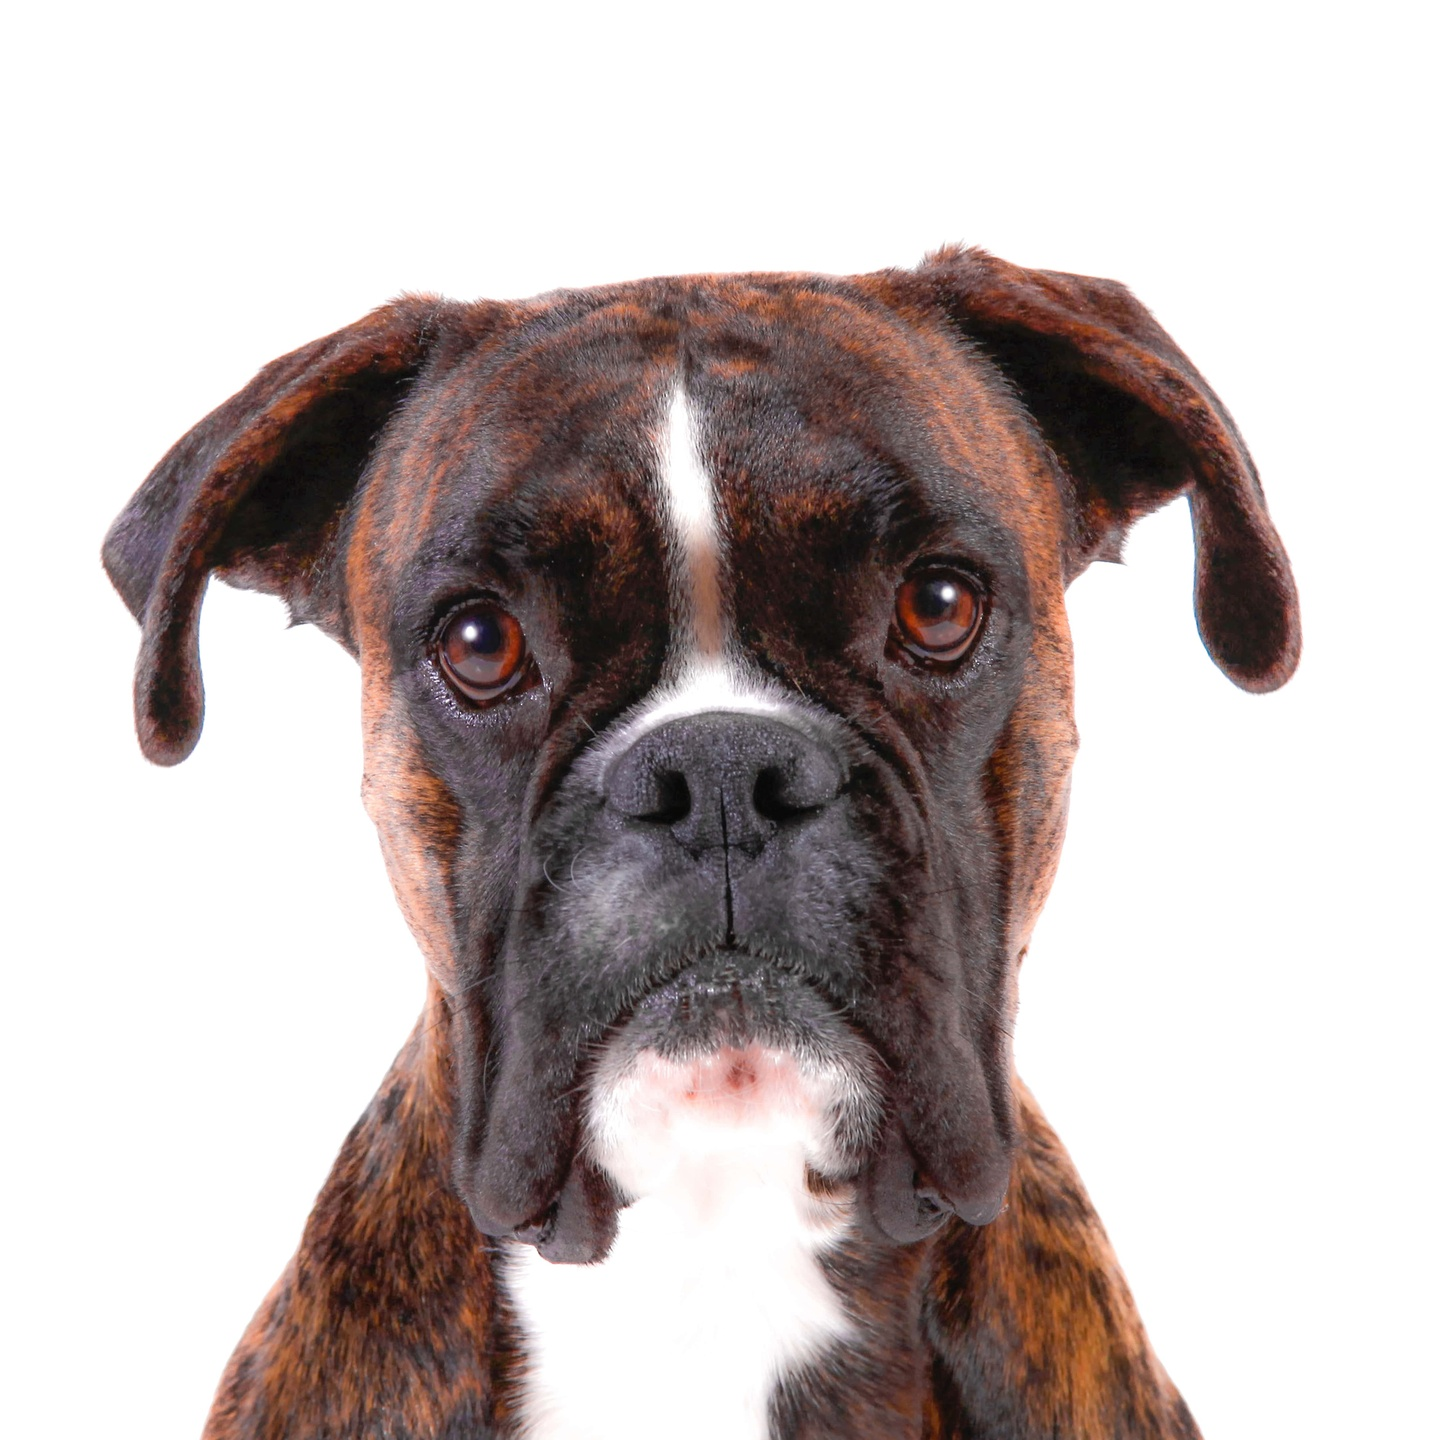 A Boxer ready for Dog Training and Dog-Friendly Outdoor Activities in Allen, Texas